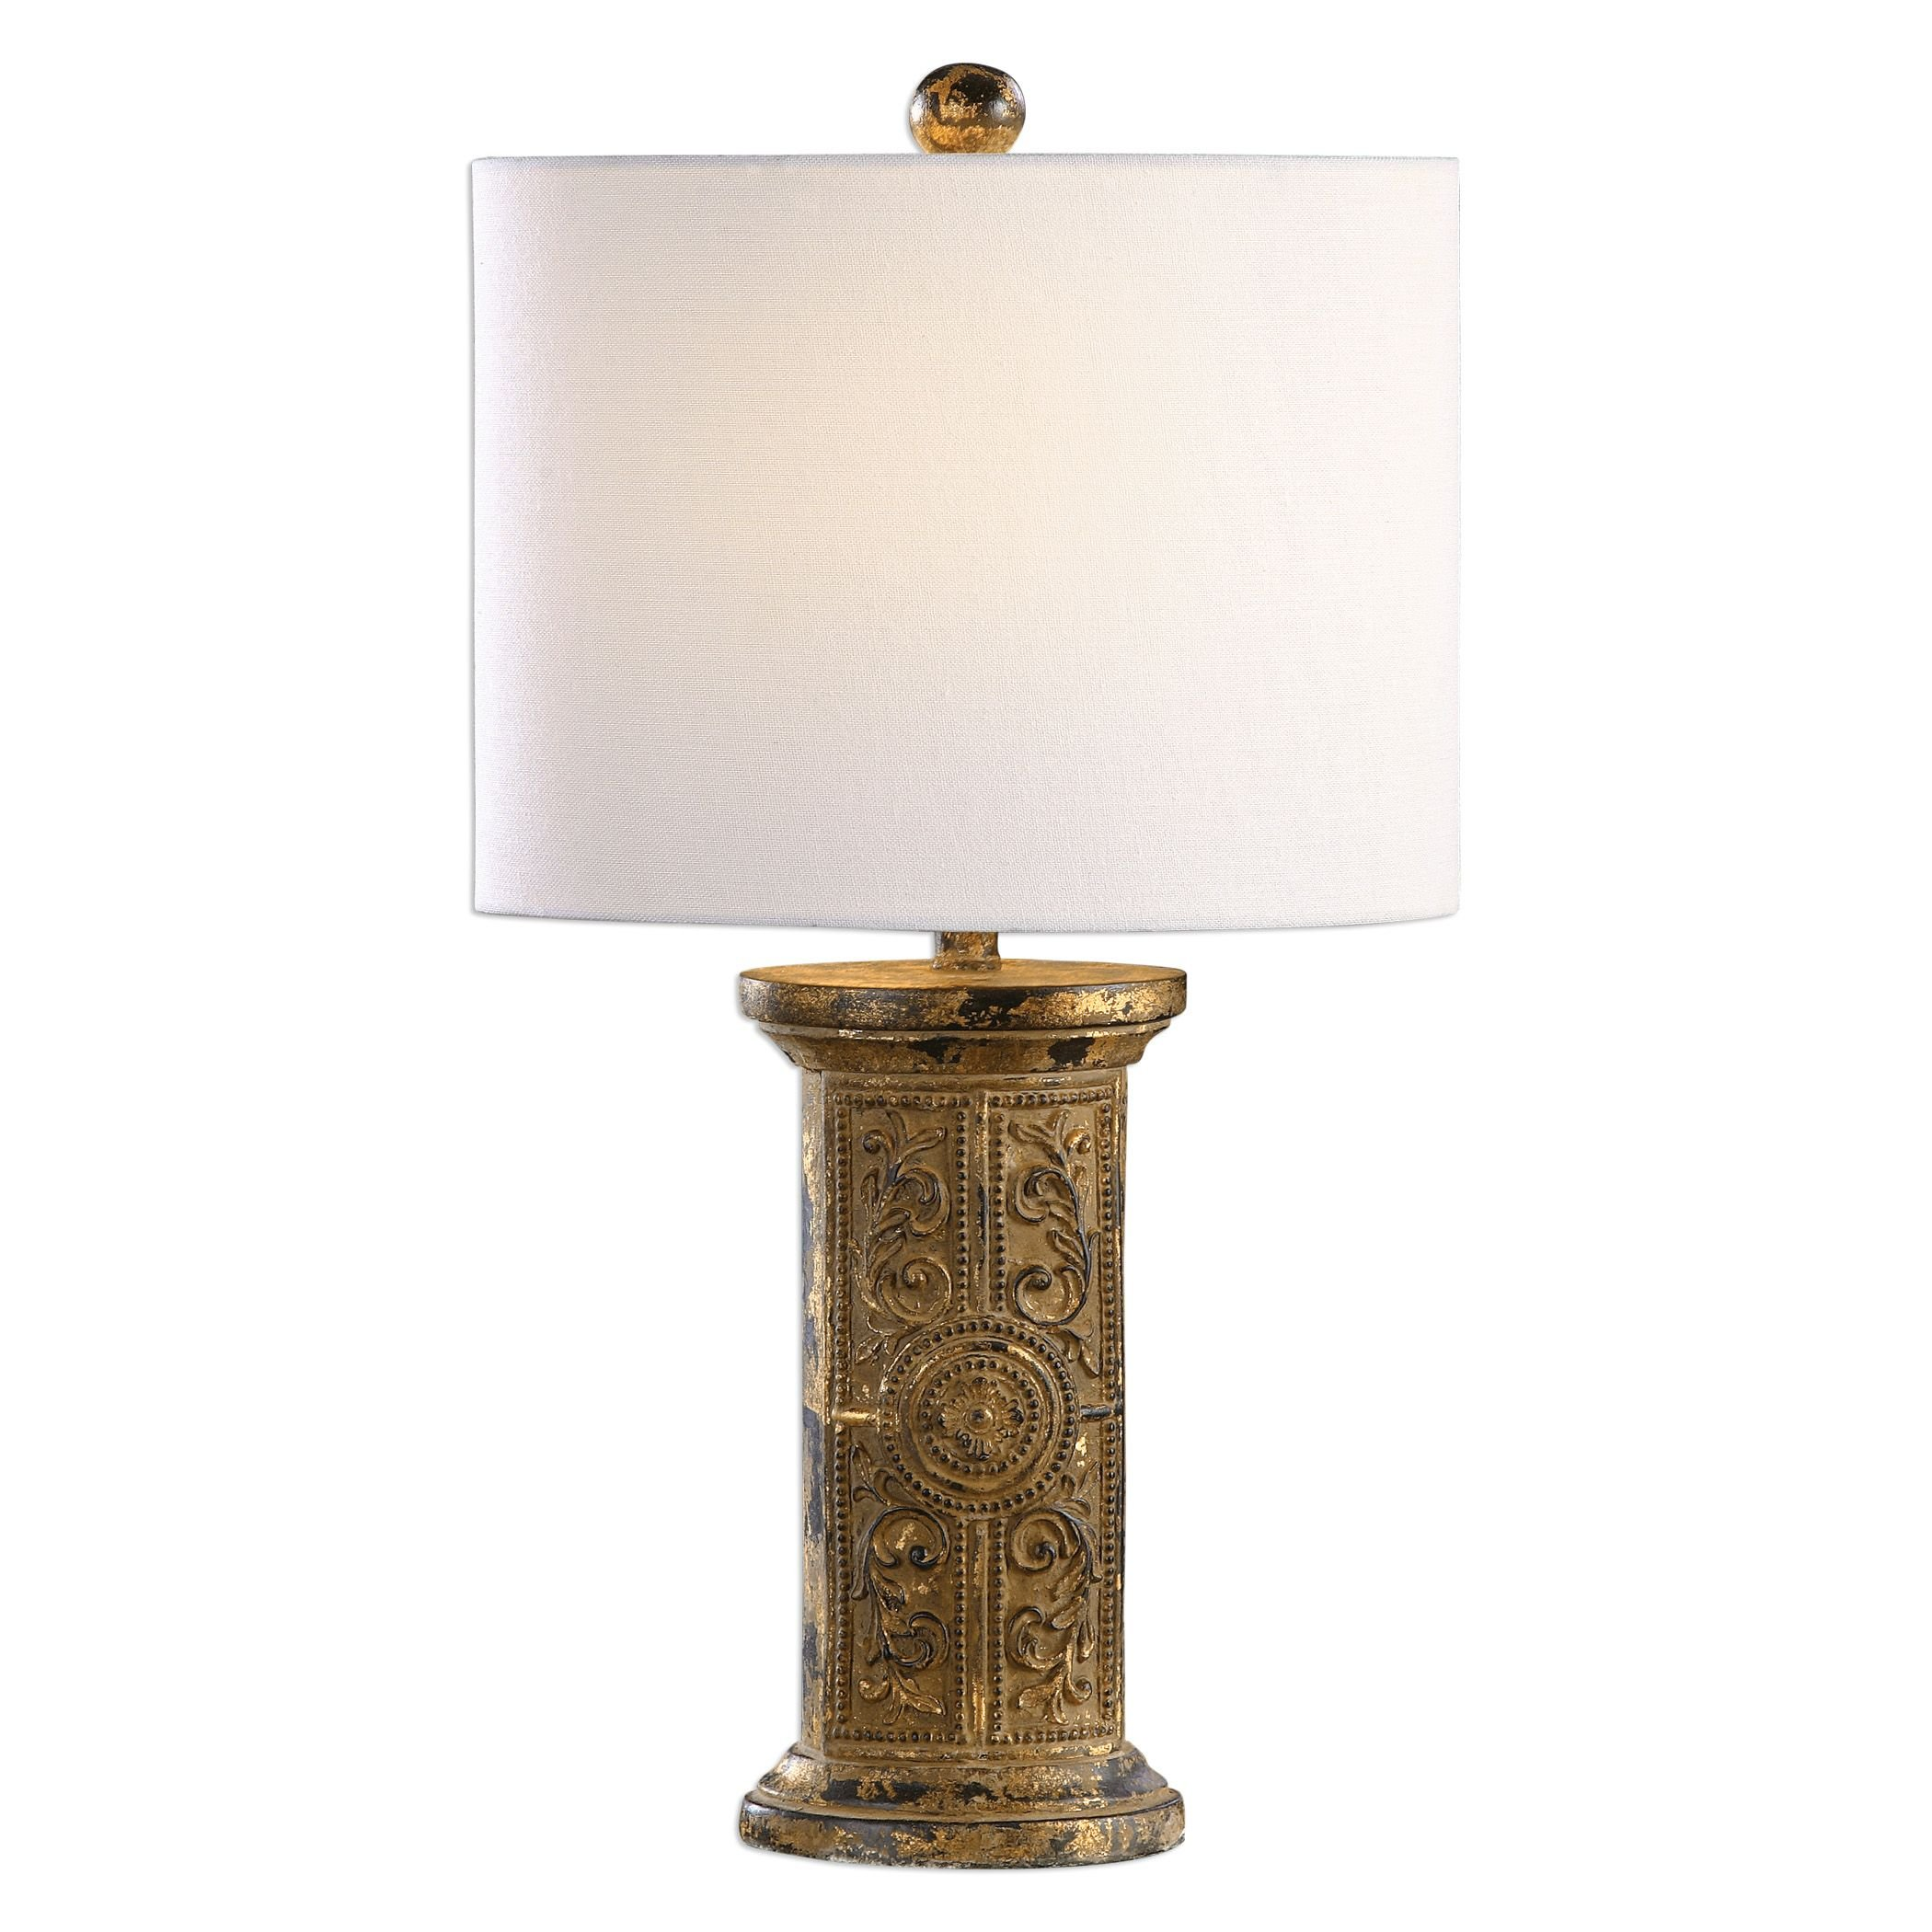 Embossed Rustic Scroll Gold Brass Table Lamp | Beaded Metal Antique Style